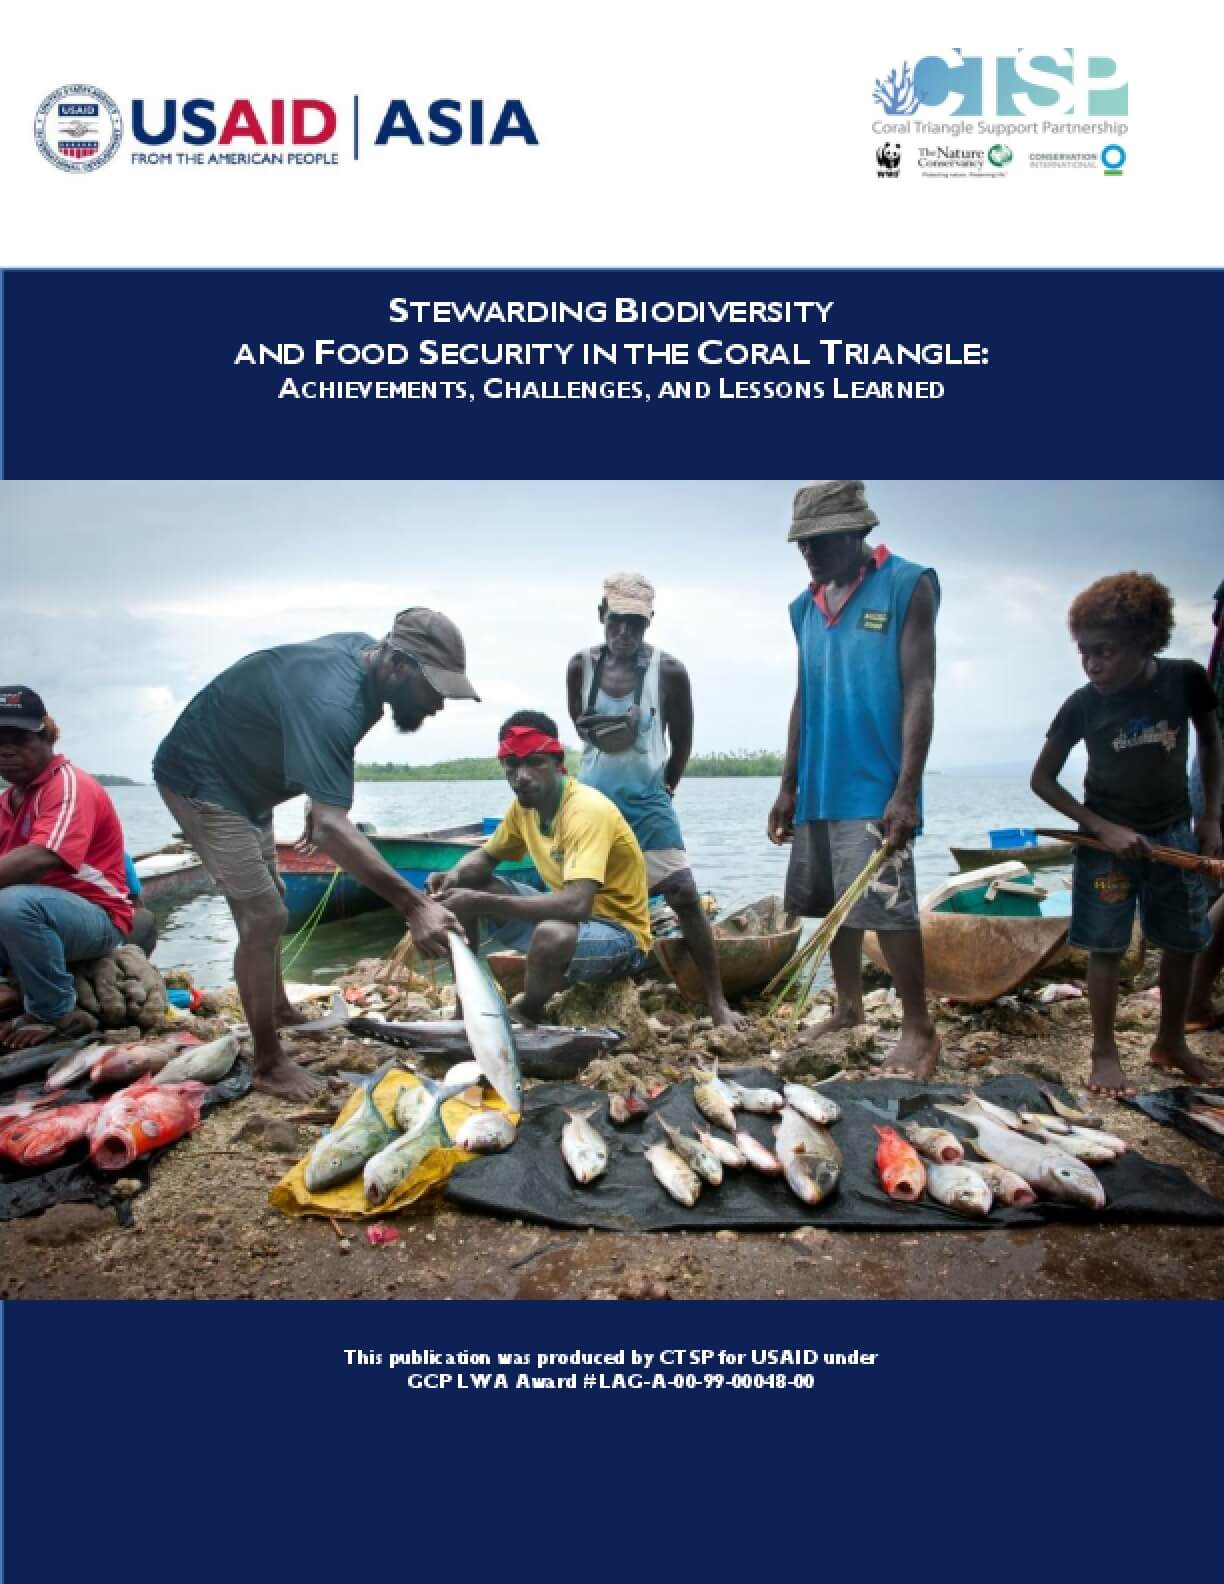 Stewarding Biodiversity and Food Security in The Coral Triangle: Achievements, Challenges, and Lessons Learned